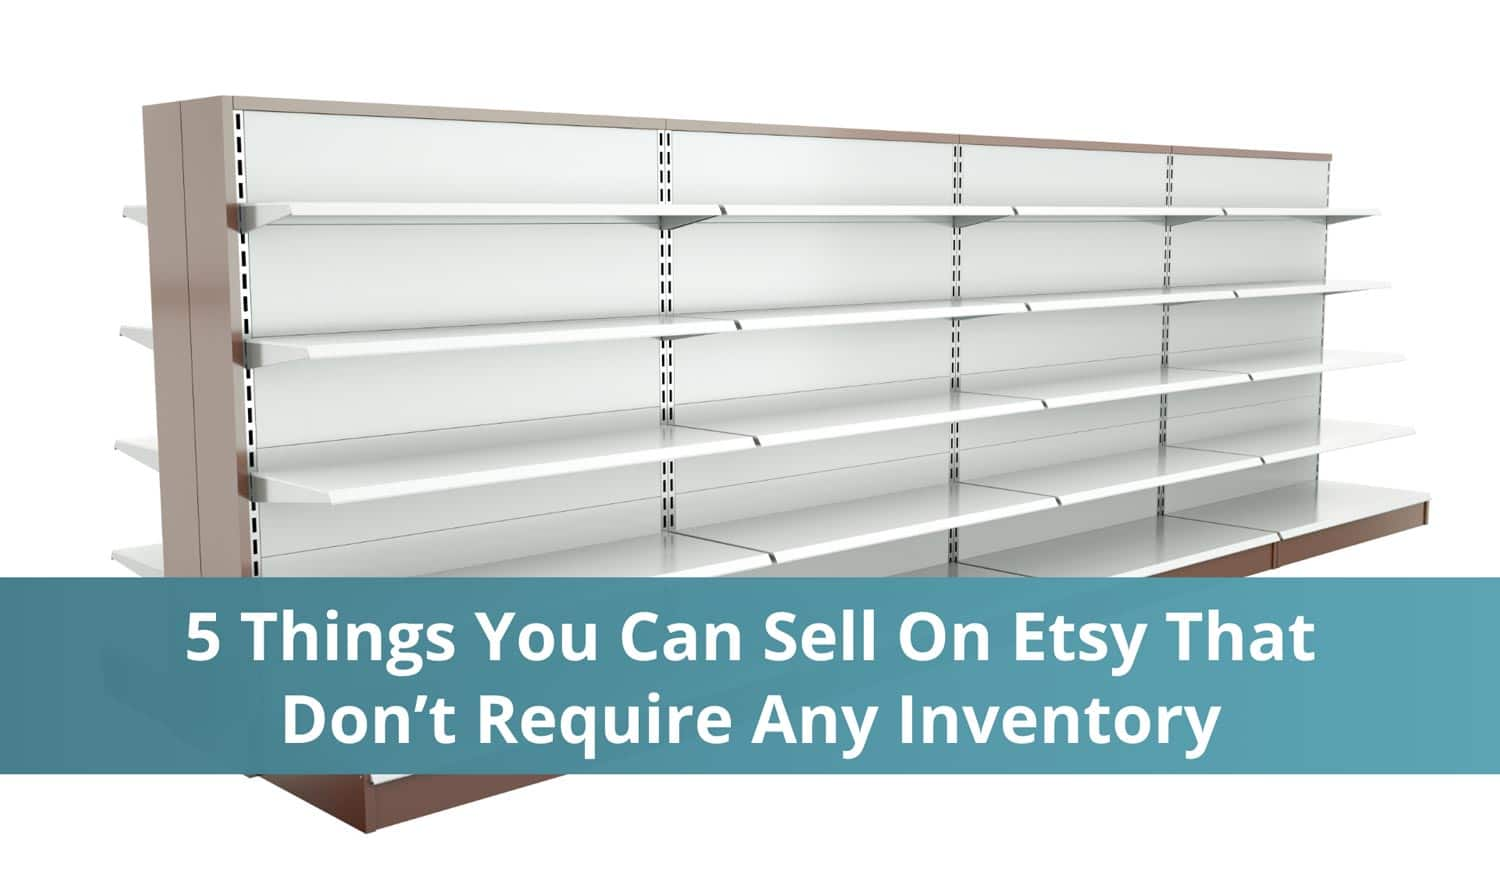 5 Things You Can Sell On Etsy That Don't Require Any Inventory